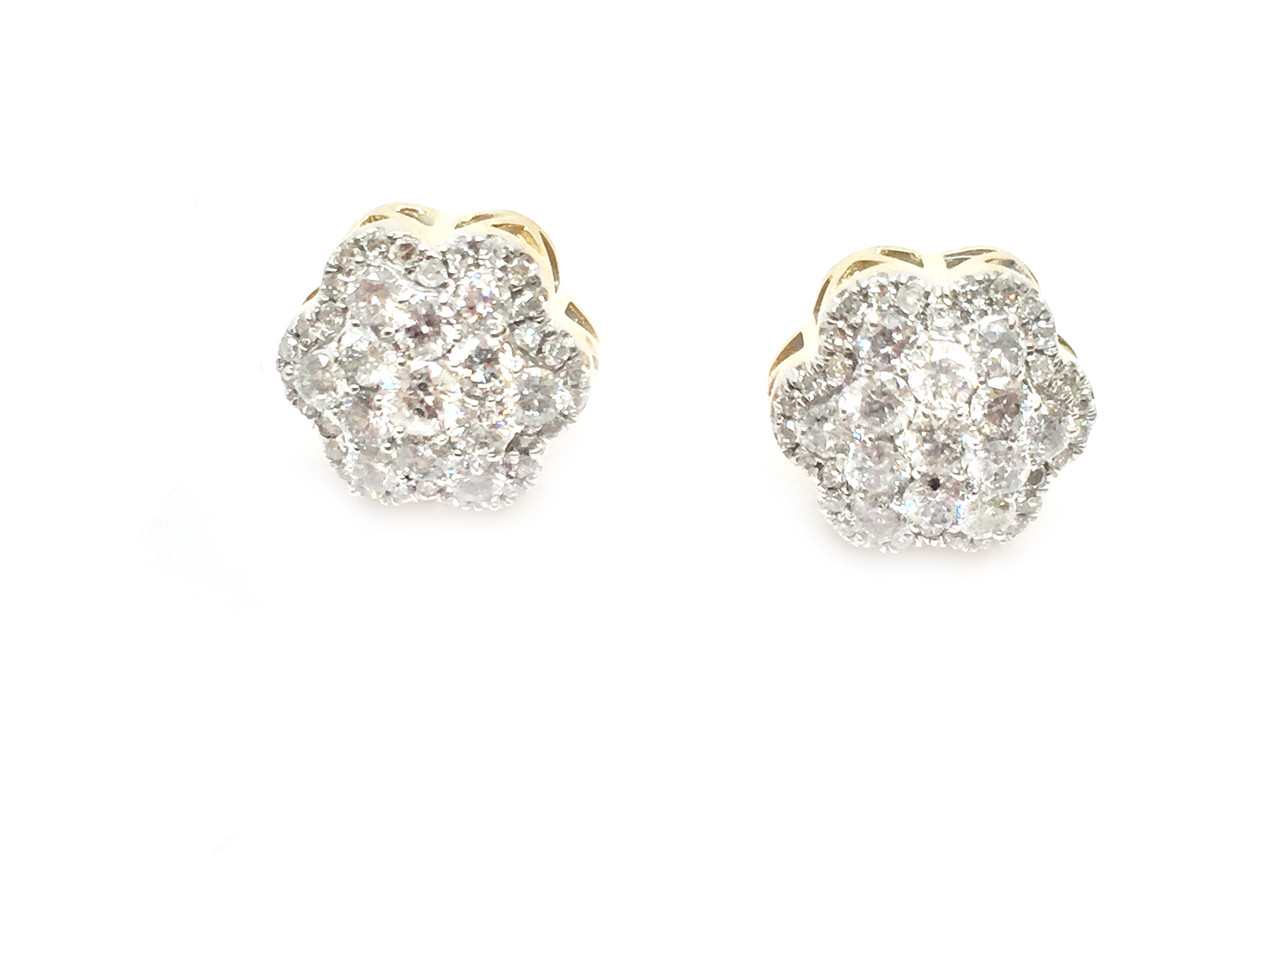 a get diamond collection naked earrings w singer jewelers earring studs stud steven